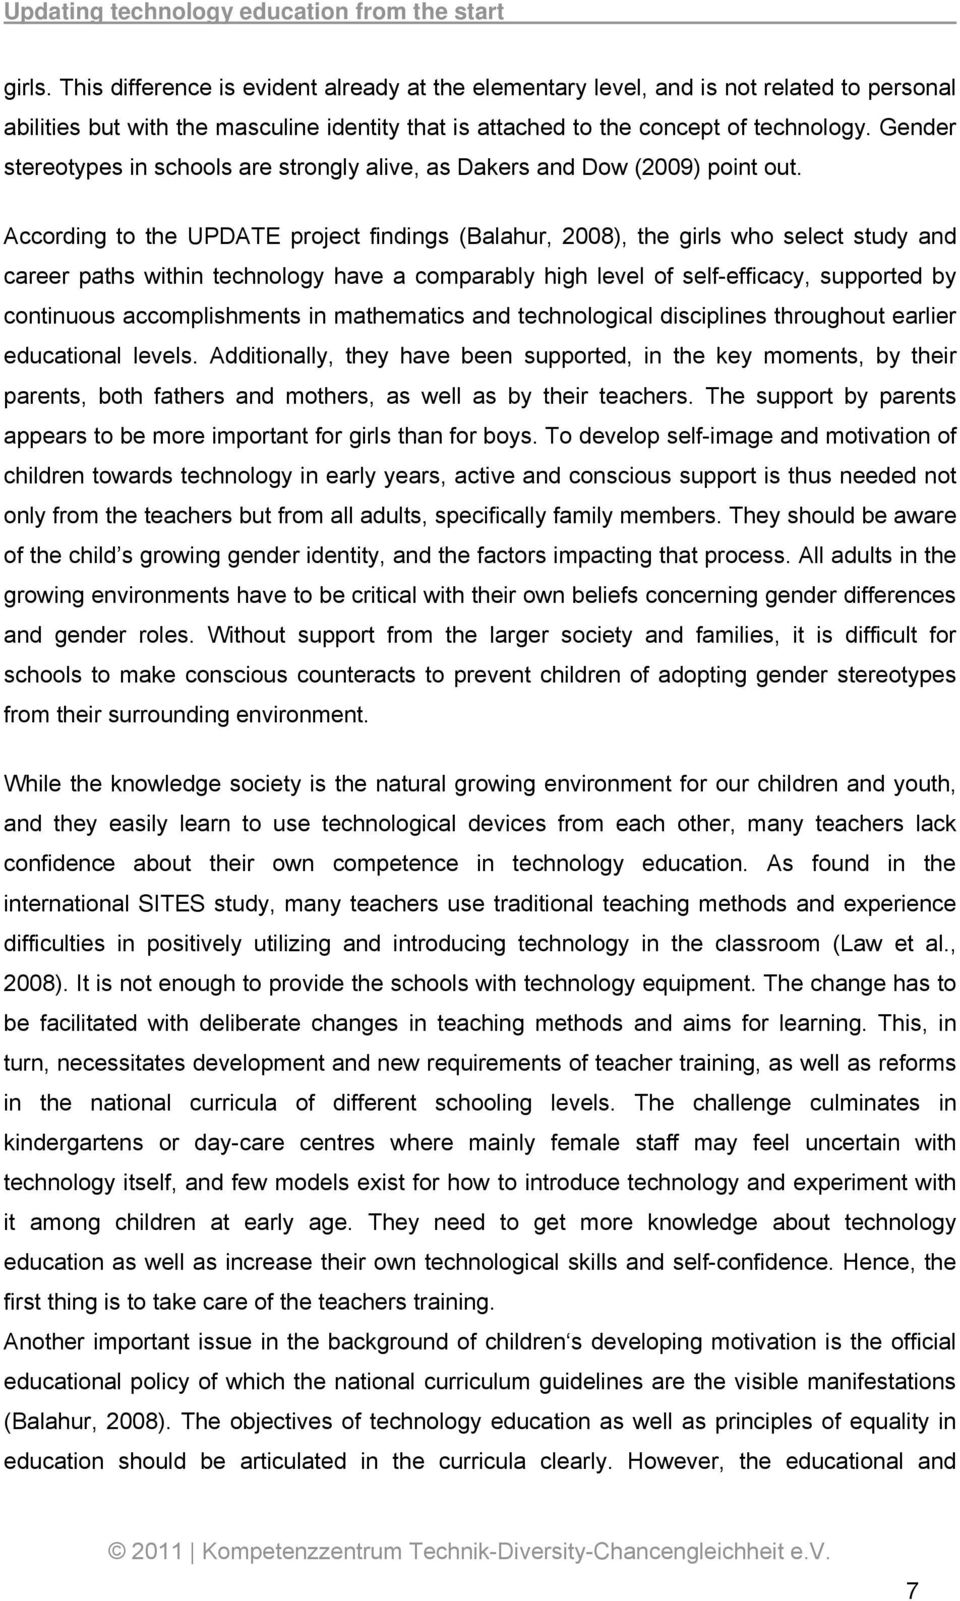 According to the UPDATE project findings (Balahur, 2008), the girls who select study and career paths within technology have a comparably high level of self-efficacy, supported by continuous